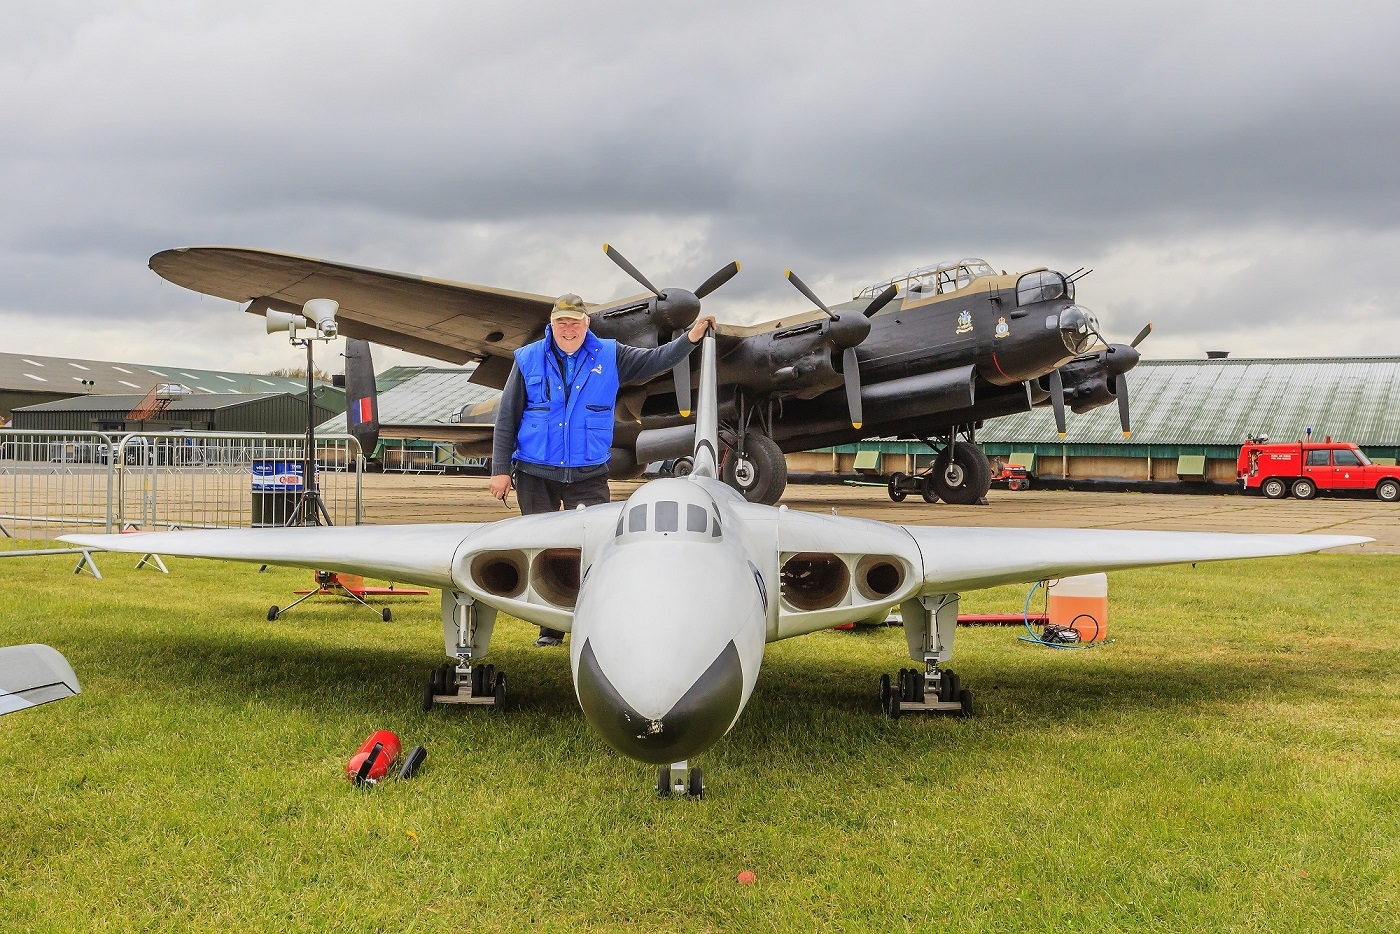 LMA Organizer Dave  Johnson next to a massive model of the  Vulcan Bomber (Image '©Trustees of the Royal Air Force Museum')